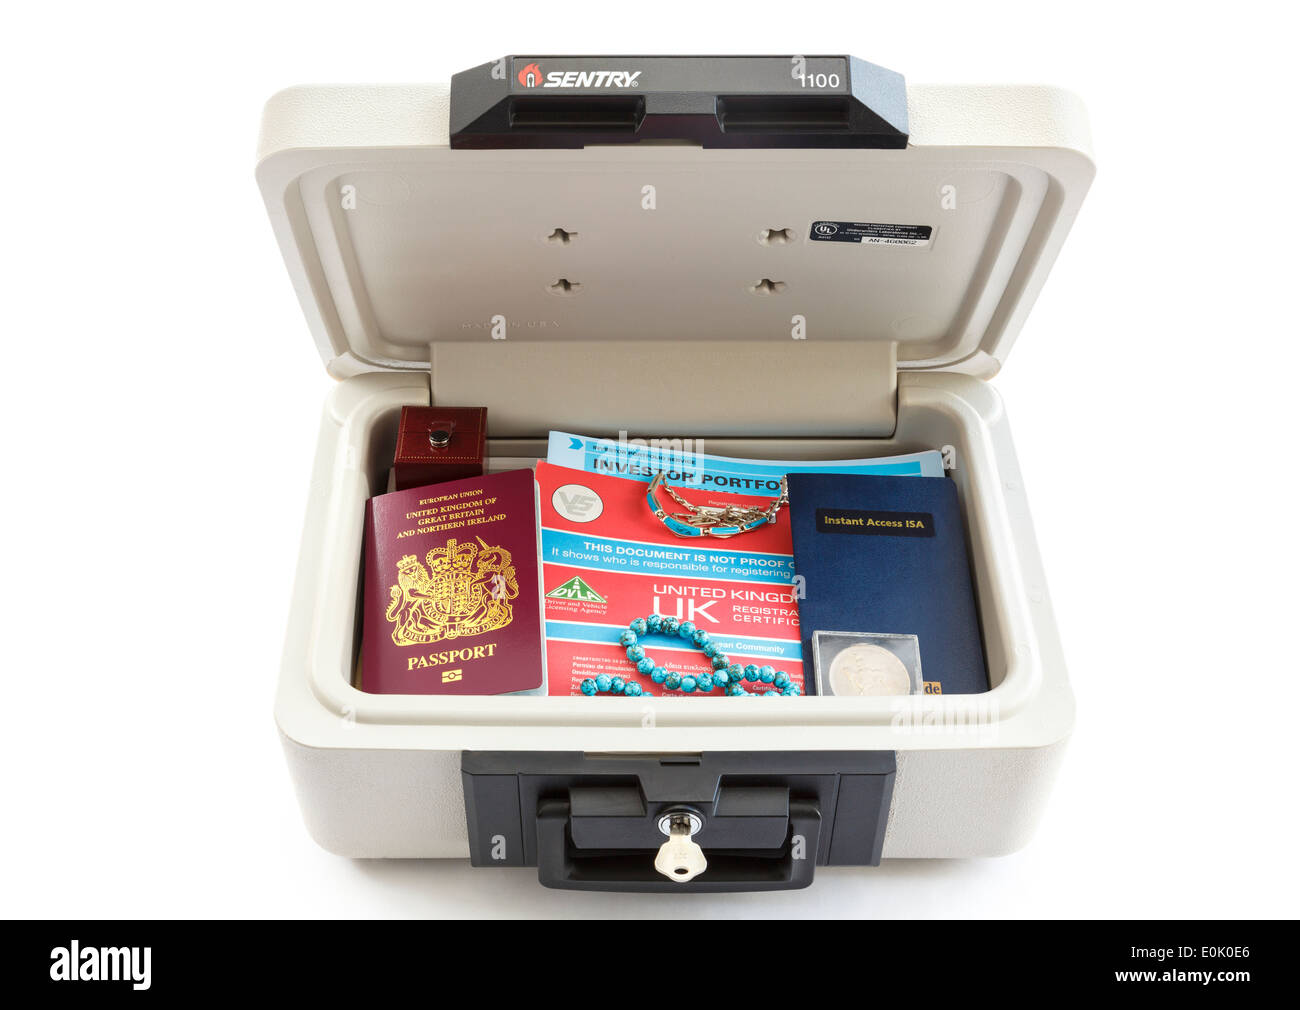 Sentry fire-safe security chest with lid open containing valuable items important paper documents to protect important things against fire damage - Stock Image